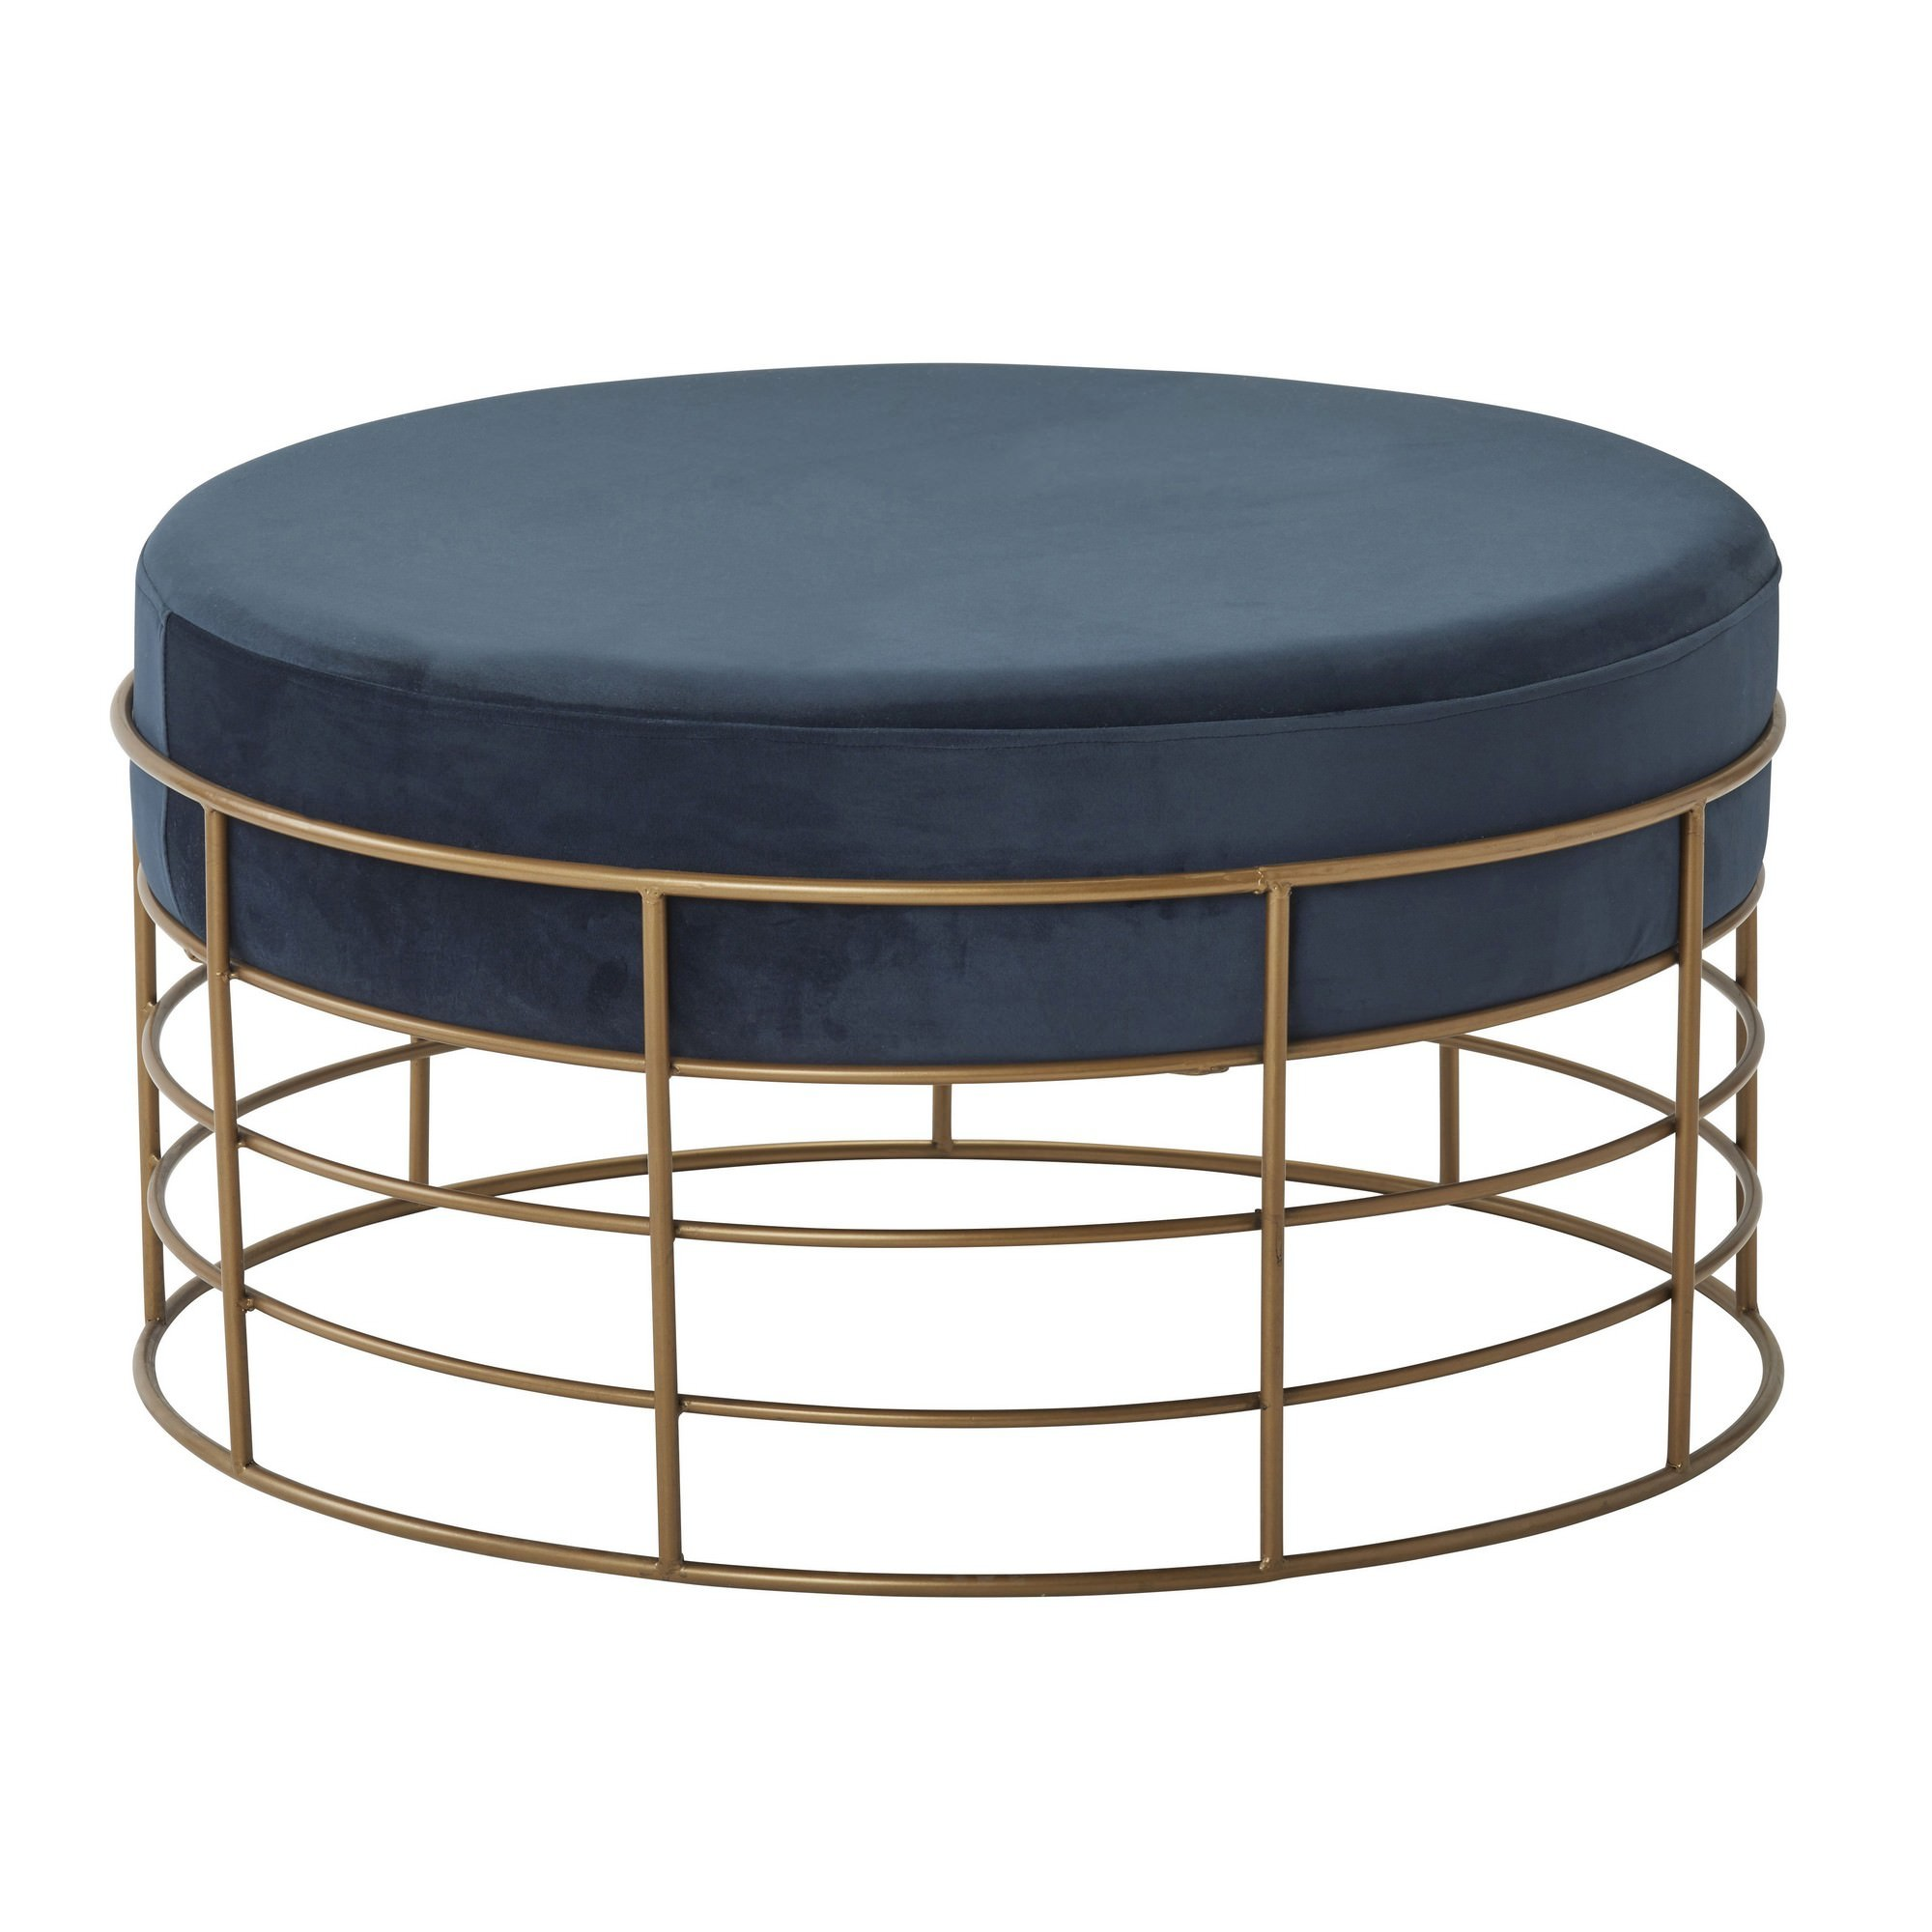 Dover  Velvet Fabric Round Coffee Table / Ottoman, 74cm